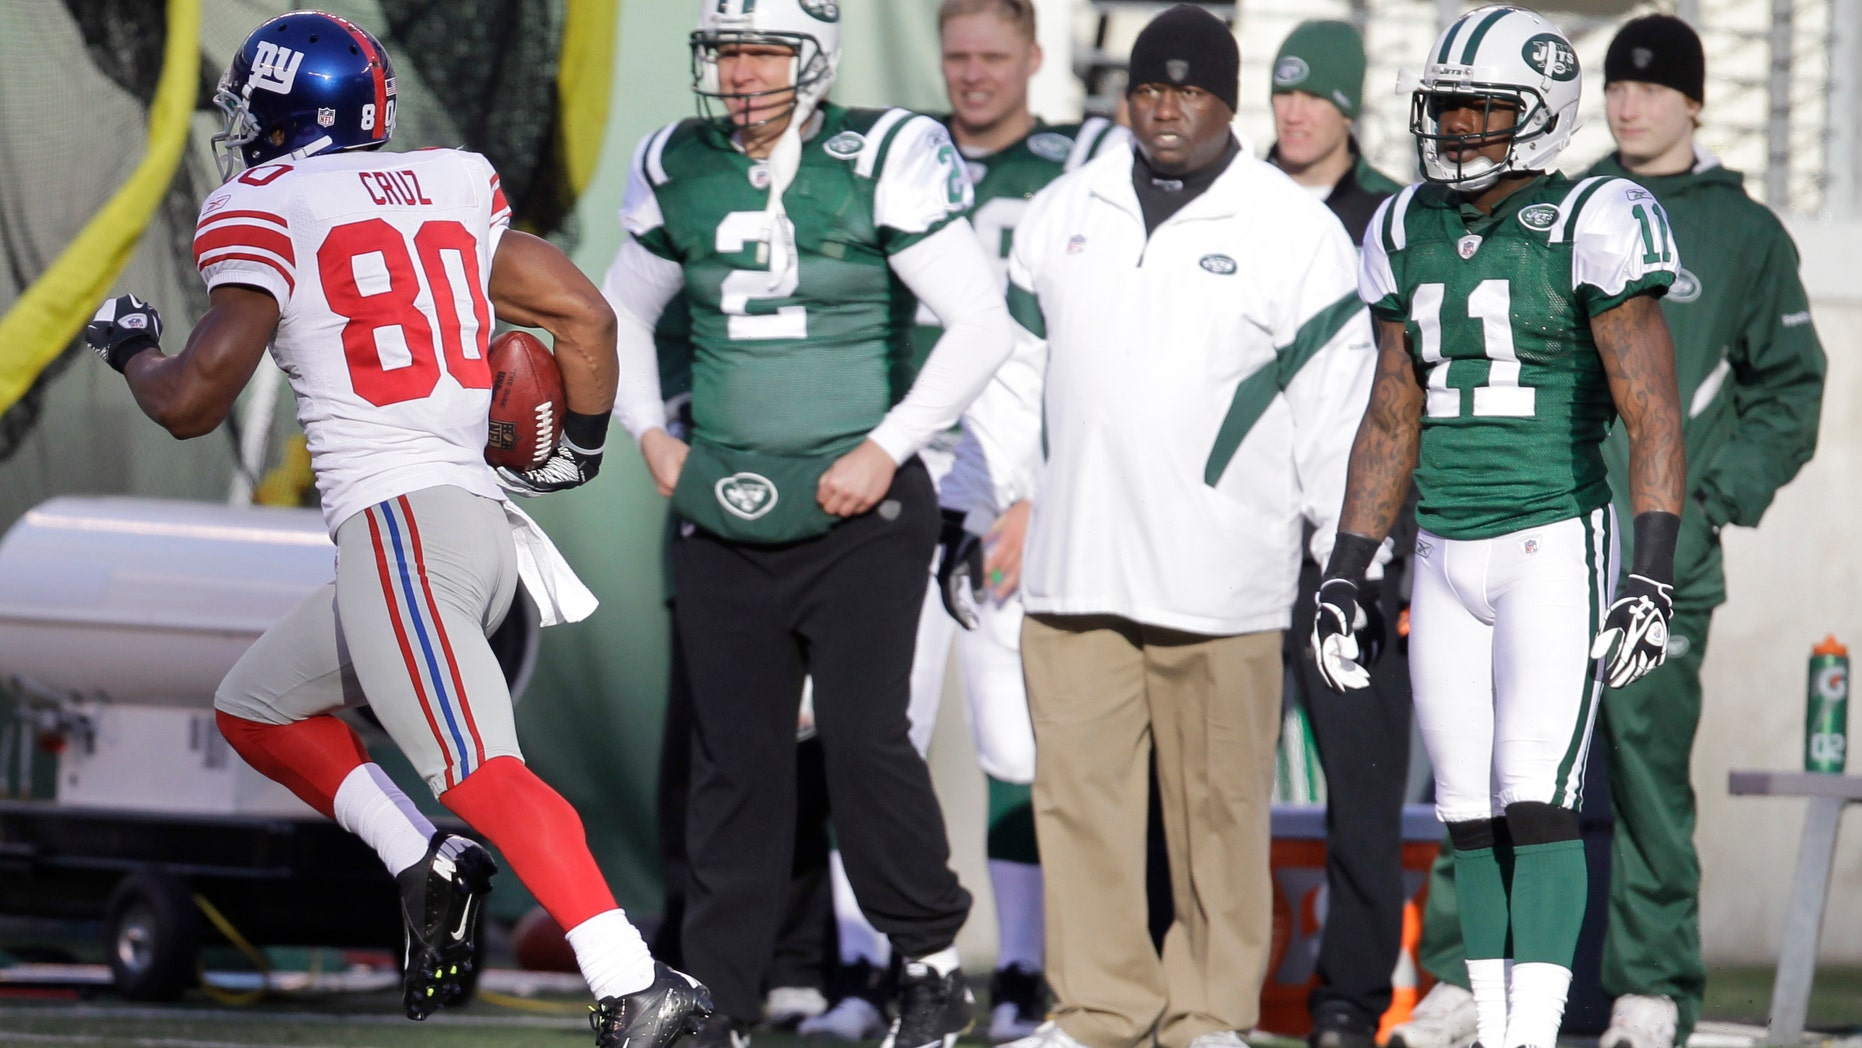 New York Giants' Victor Cruz (80) runs 99 yards for a touchdown as the New York Jets sideline watches during the second quarter of an NFL football game between the New York Giants and the New York Jets, Saturday, Dec. 24, 2011, in East Rutherford, N.J. (AP Photo/Julio Cortez)